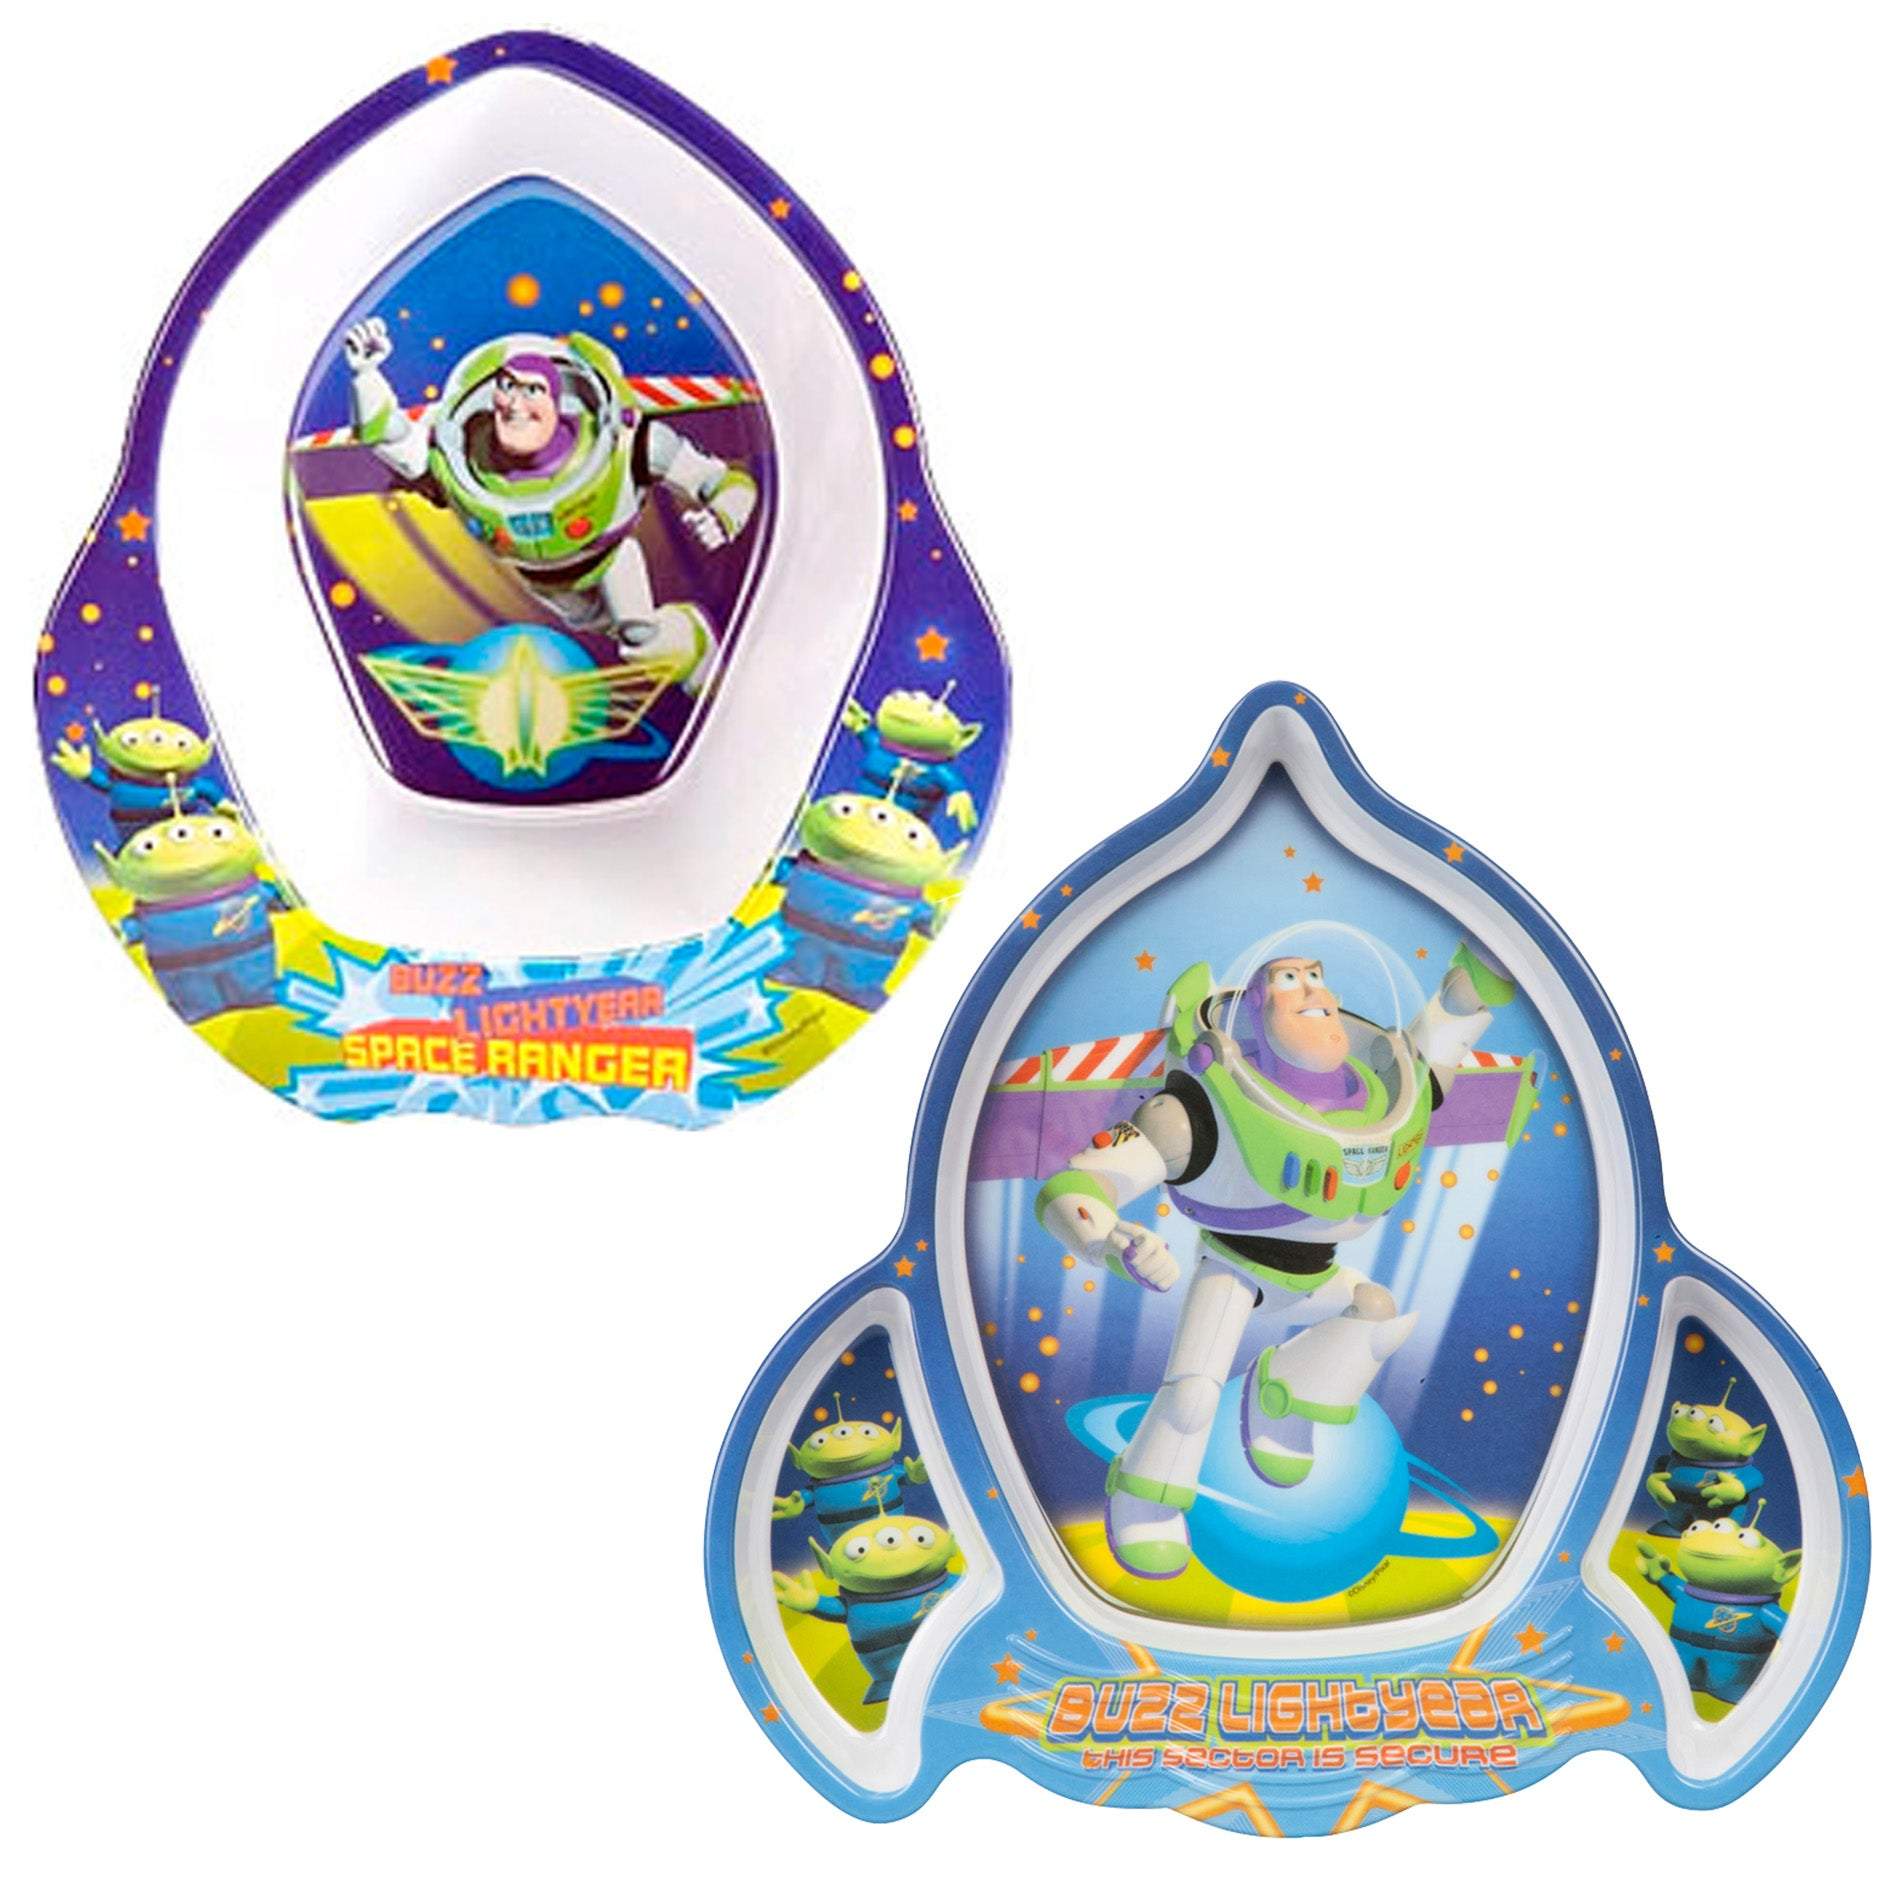 Toy Story Rocket Bowl and Plate Set - Thumbnail 0